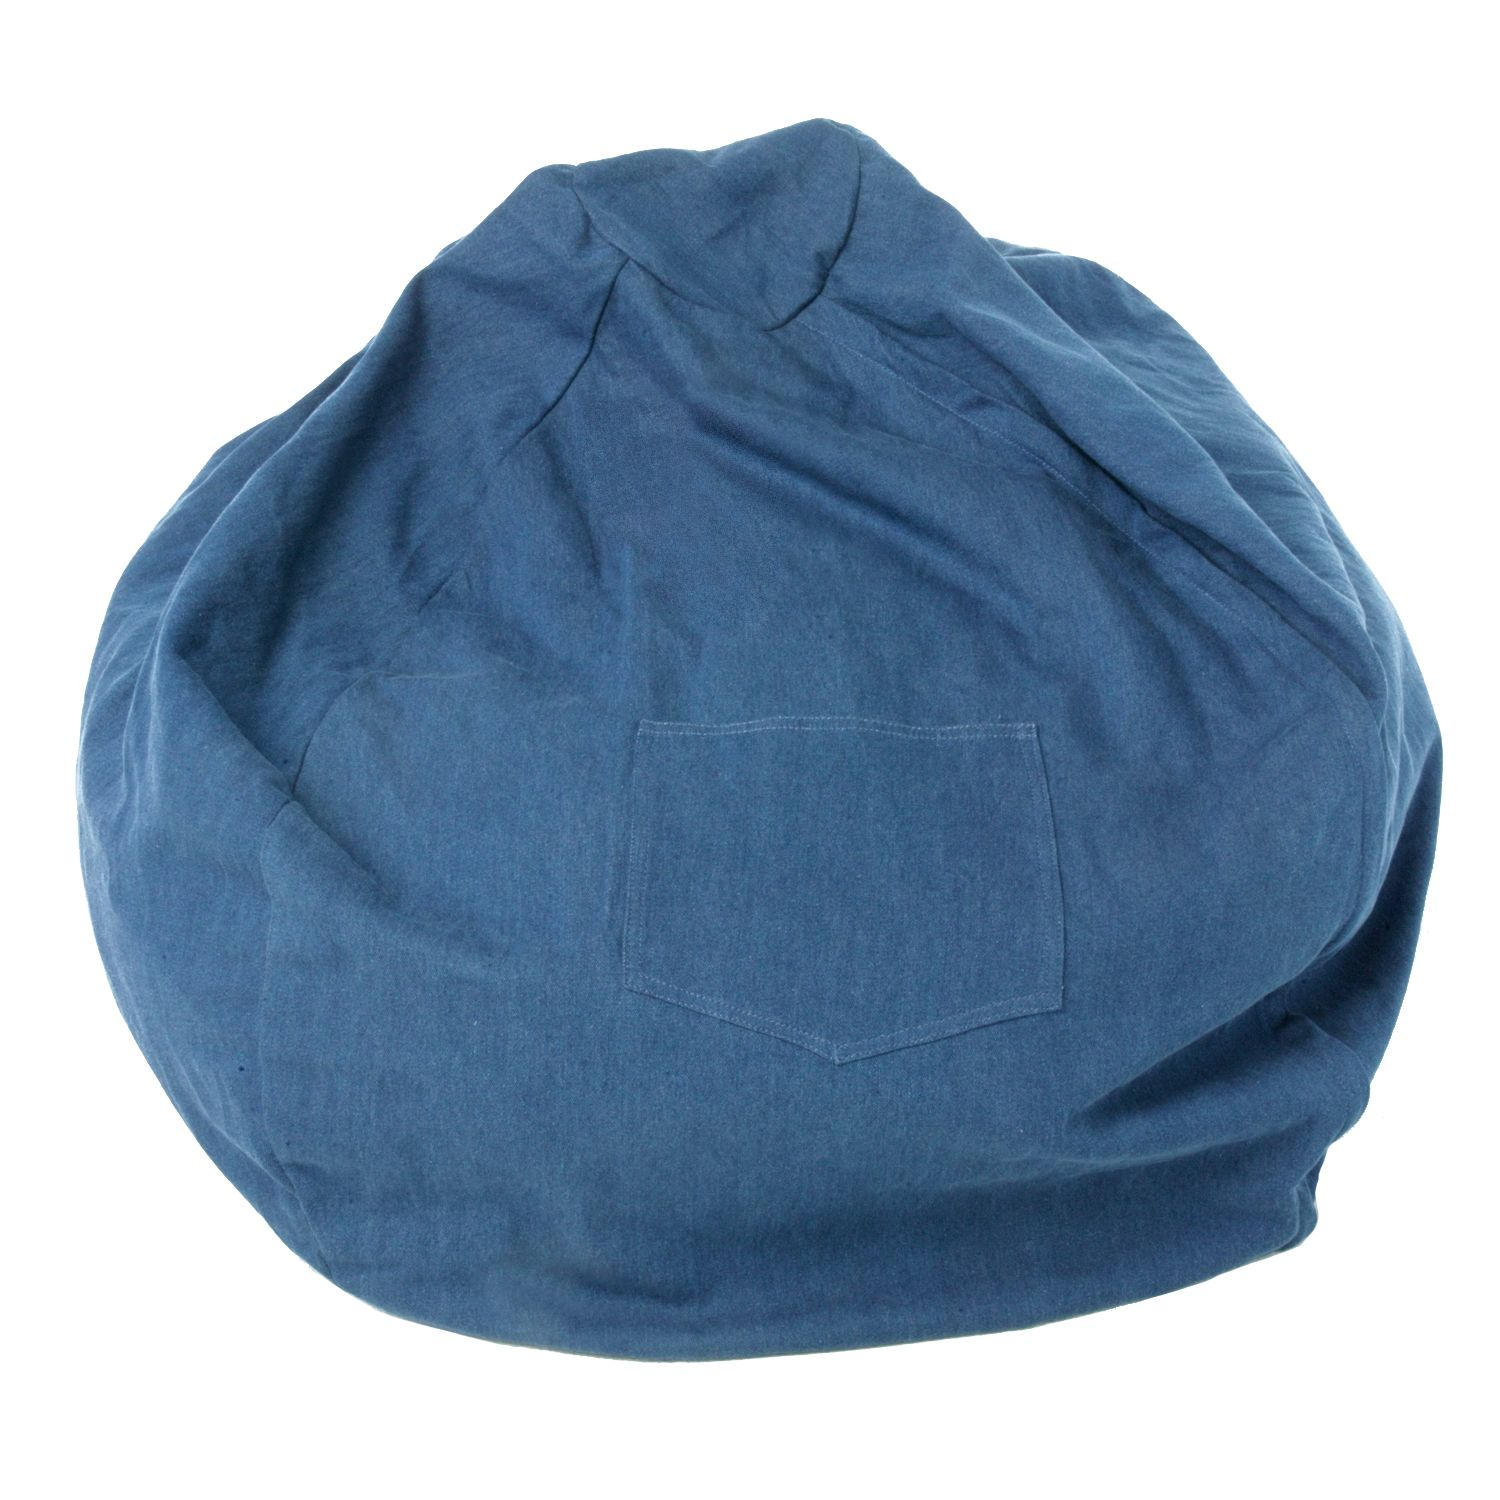 Fun Furnishings Blue Denim Large Beanbag Chair   Teen